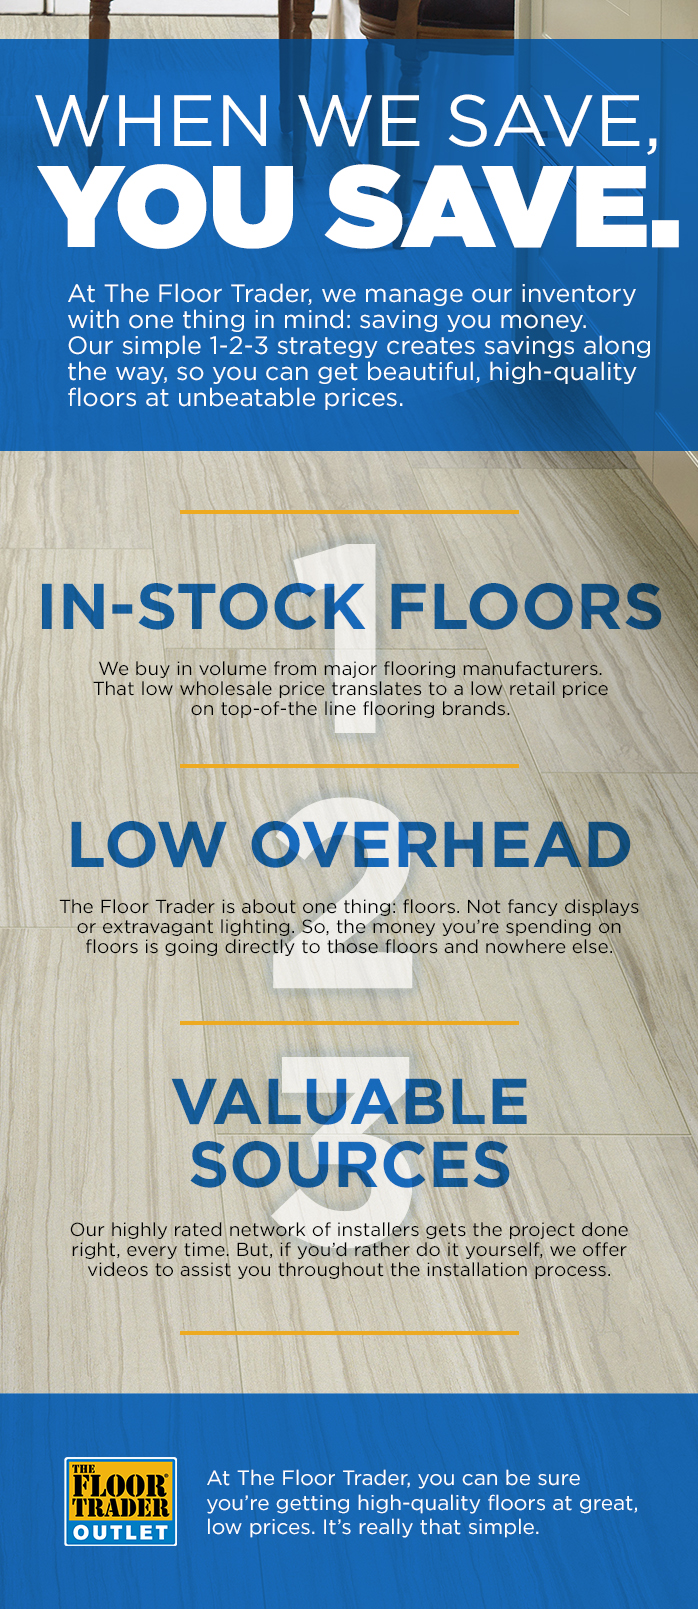 Floor Trader Theory of Outletivity